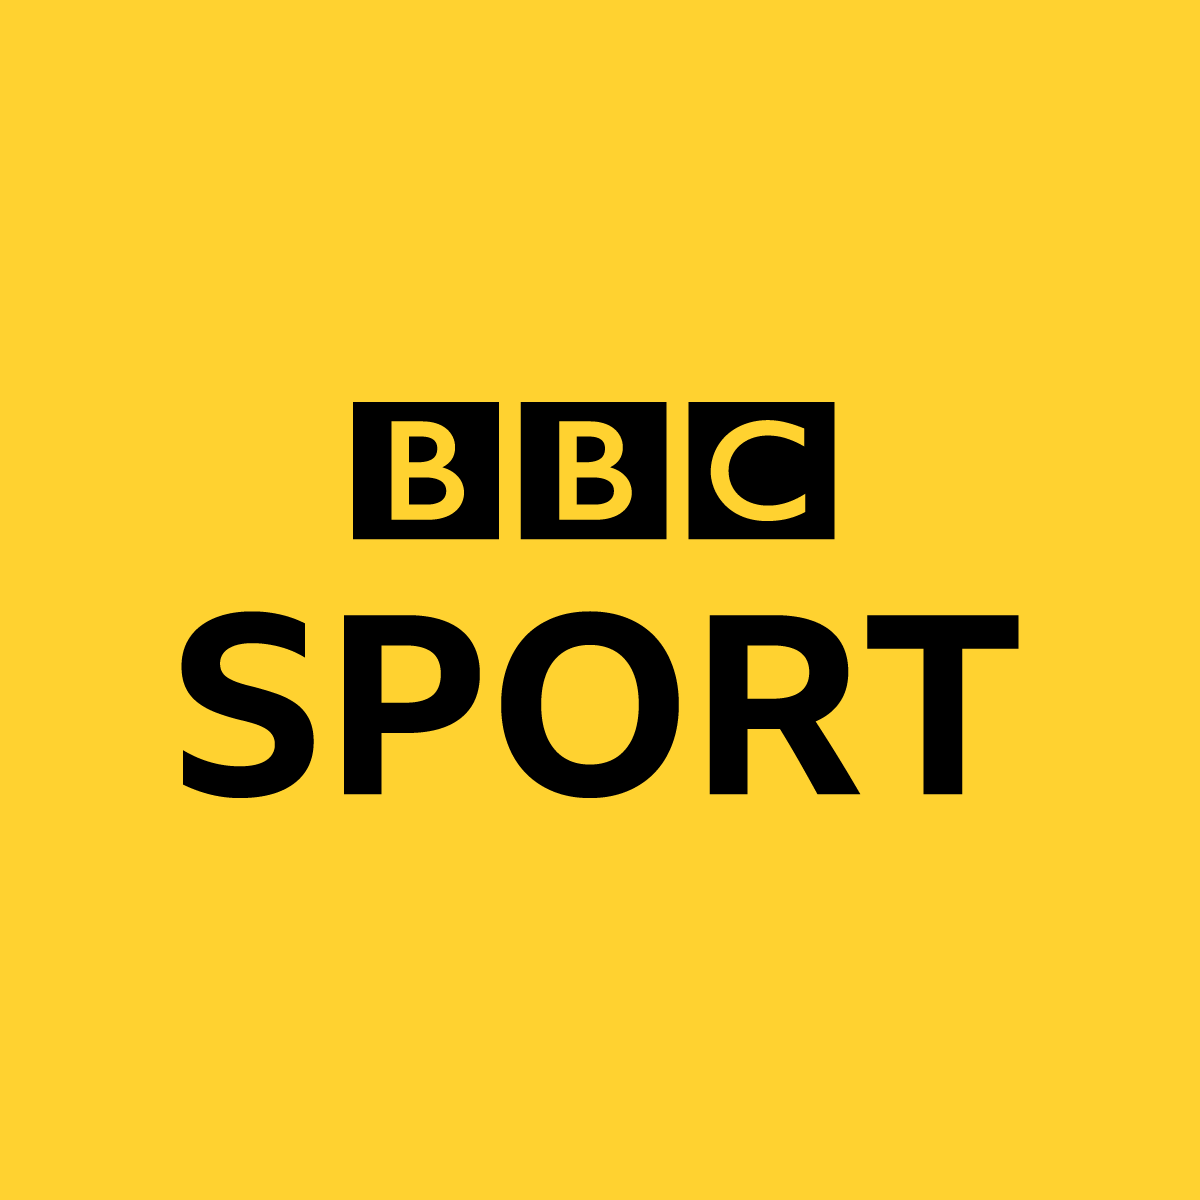 Bayern Munich: Arjen Robben & Franck Ribery score as Bayern win seventh straight title - BBC Sport thumbnail